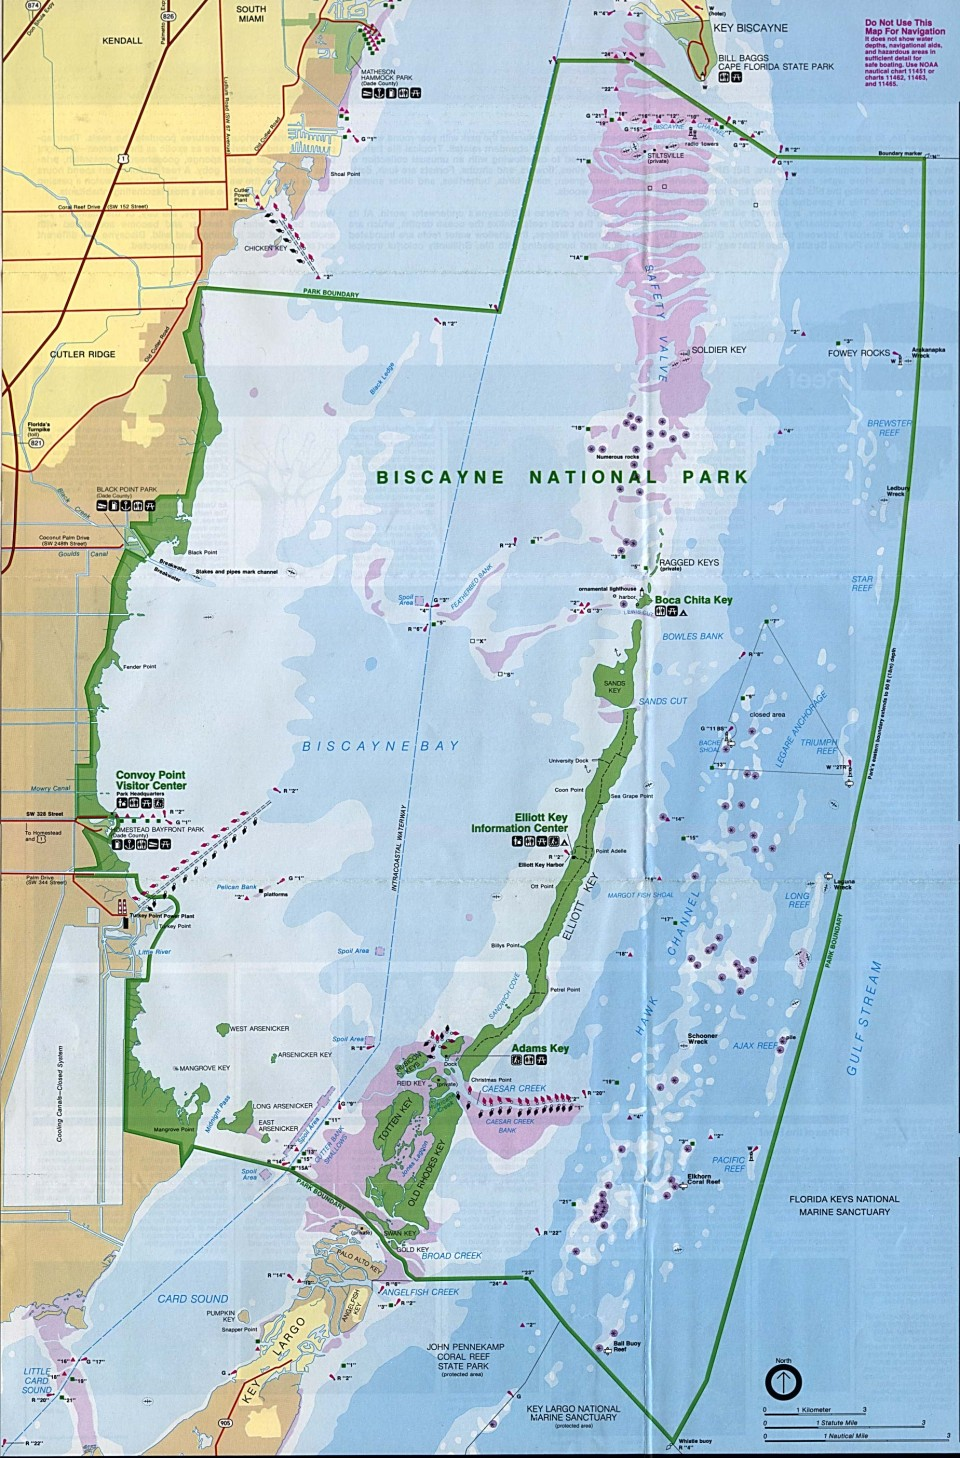 004 Biscayne National Park Map Essay Wonderful 960